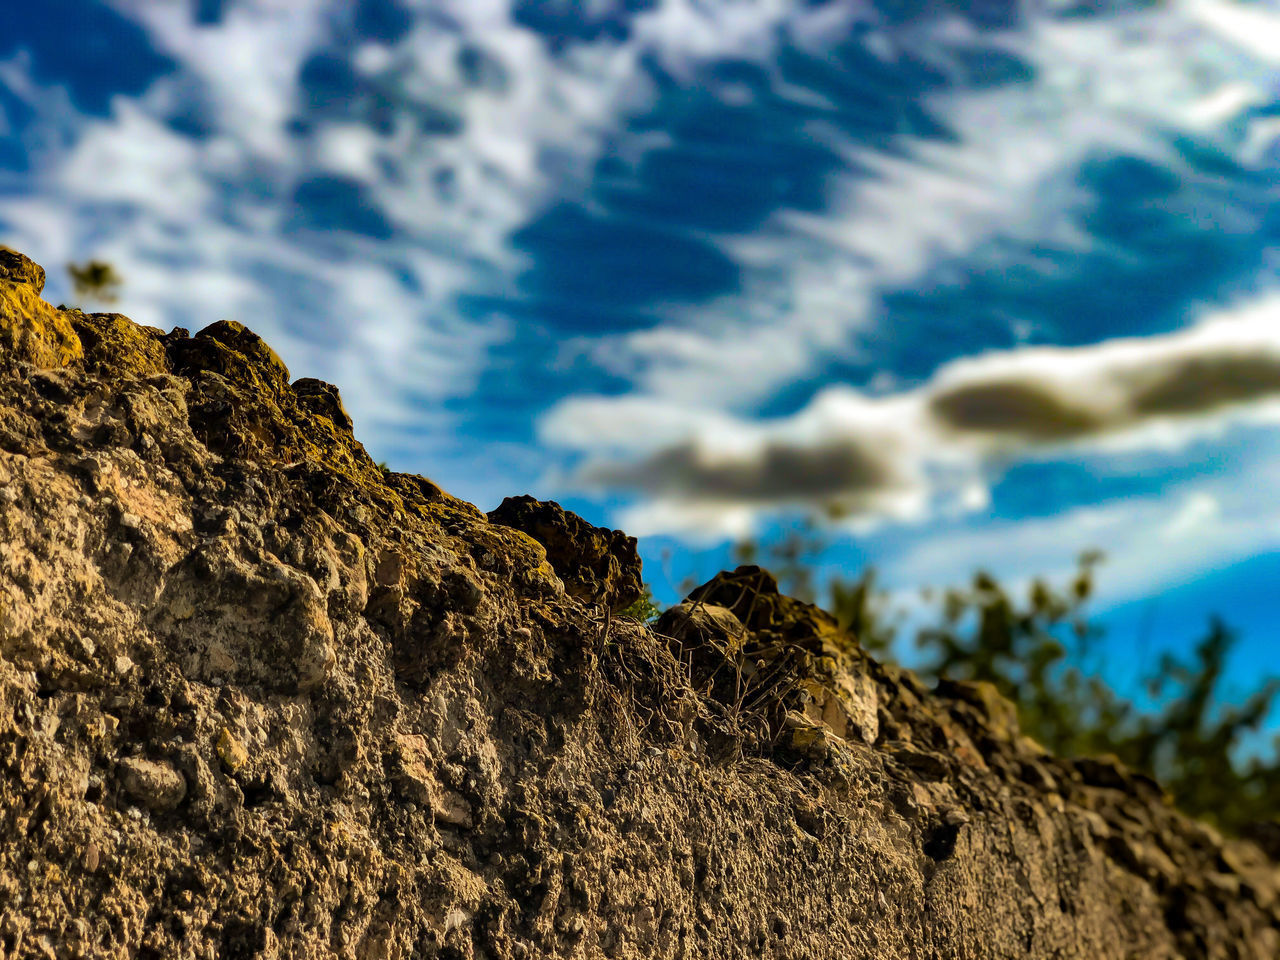 rock, rock - object, cloud - sky, sky, solid, low angle view, nature, tranquility, textured, no people, day, beauty in nature, focus on foreground, rough, rock formation, outdoors, selective focus, mountain, close-up, tranquil scene